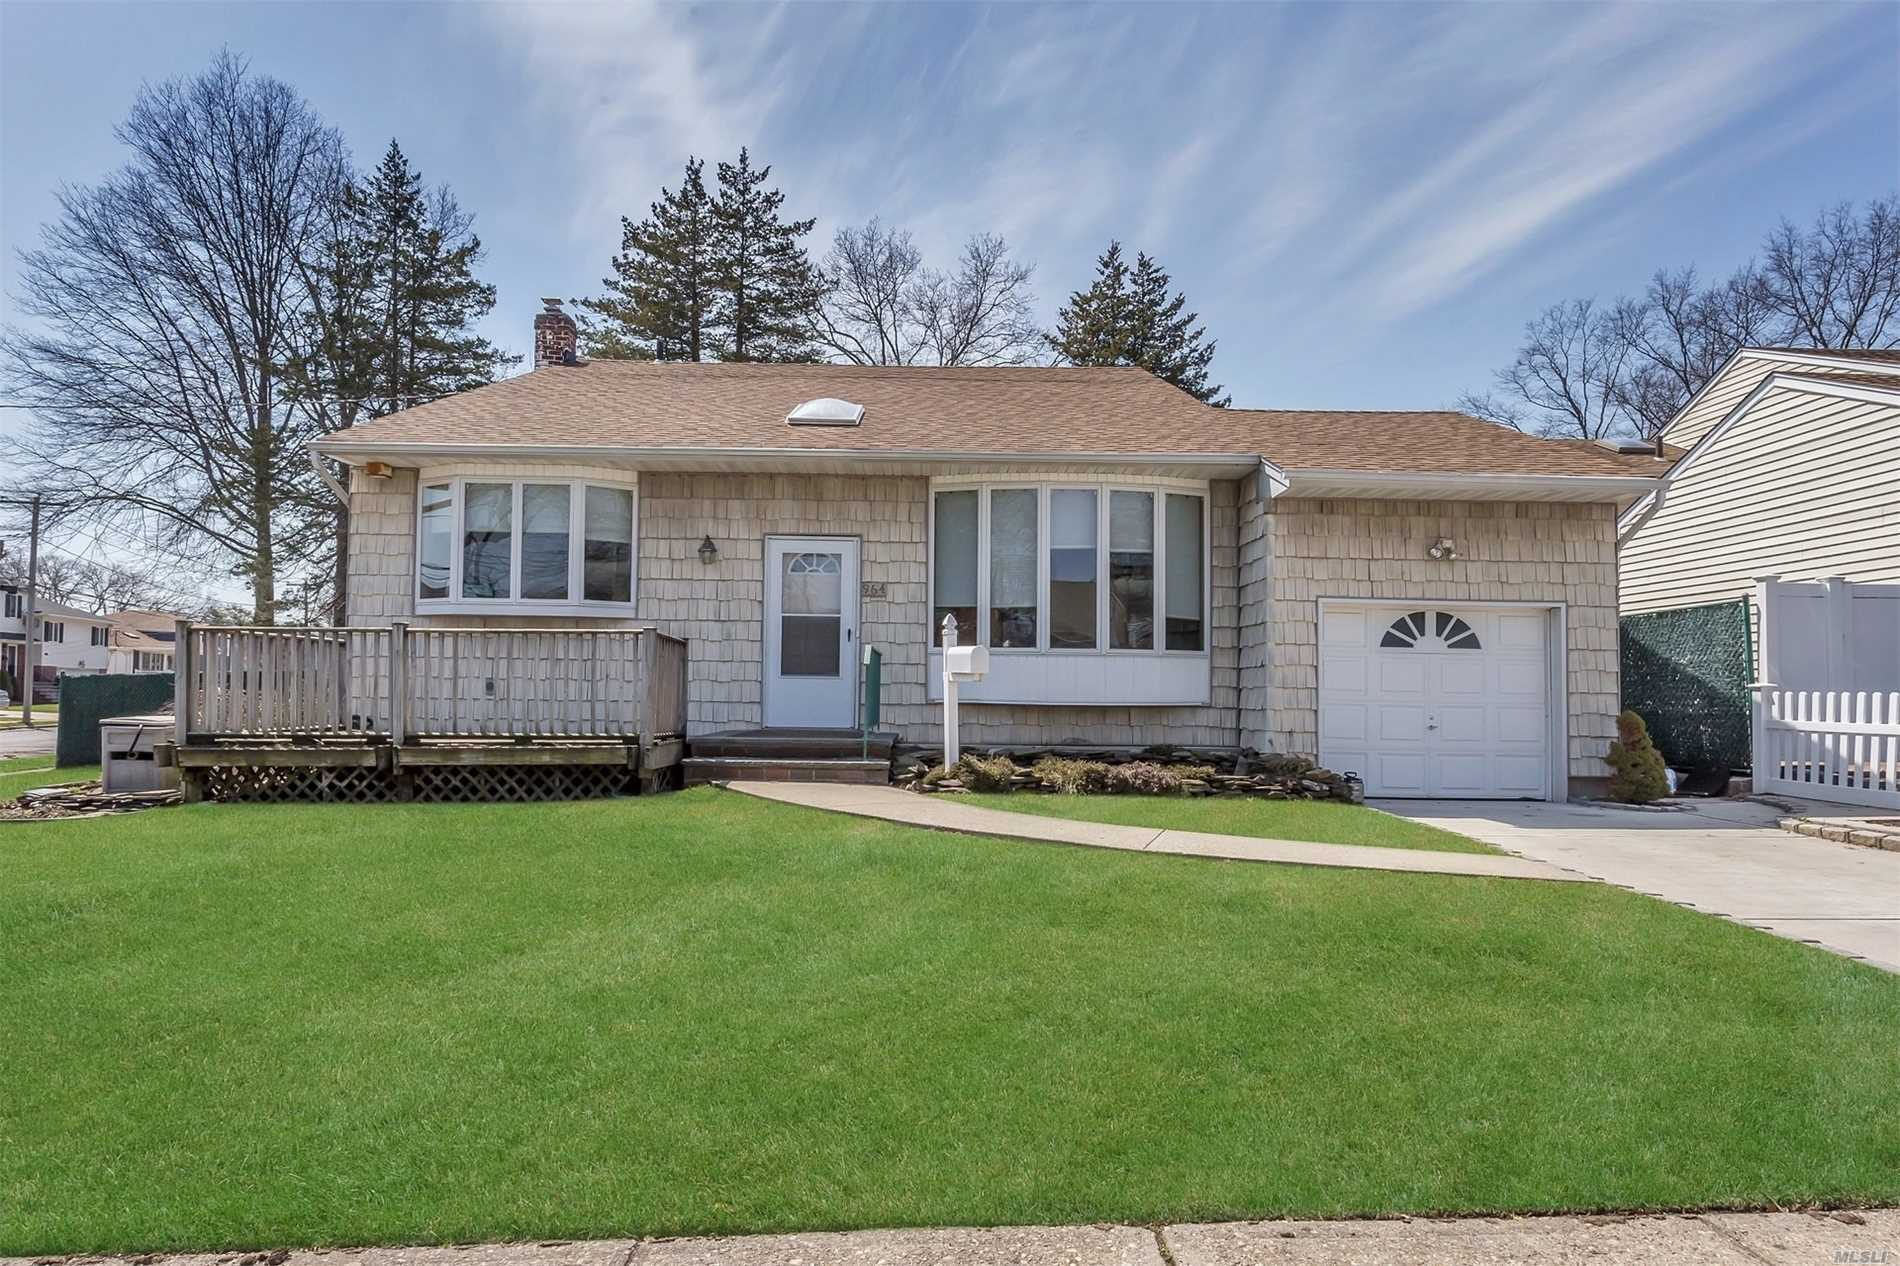 Move-In Cond 5 Bdrm 2 Bath Updated Front To Back Split W/Full Basement! 5 Bdrm 2 Bath, Oak/Corian Eik, Fdr, Vaulted Lr, Hardwood Floors, 200 Amp, Cac, Gas Cooking And Heat, Igs, Whole House Water Filtration System. 1 Car Garage, Won't Last!!